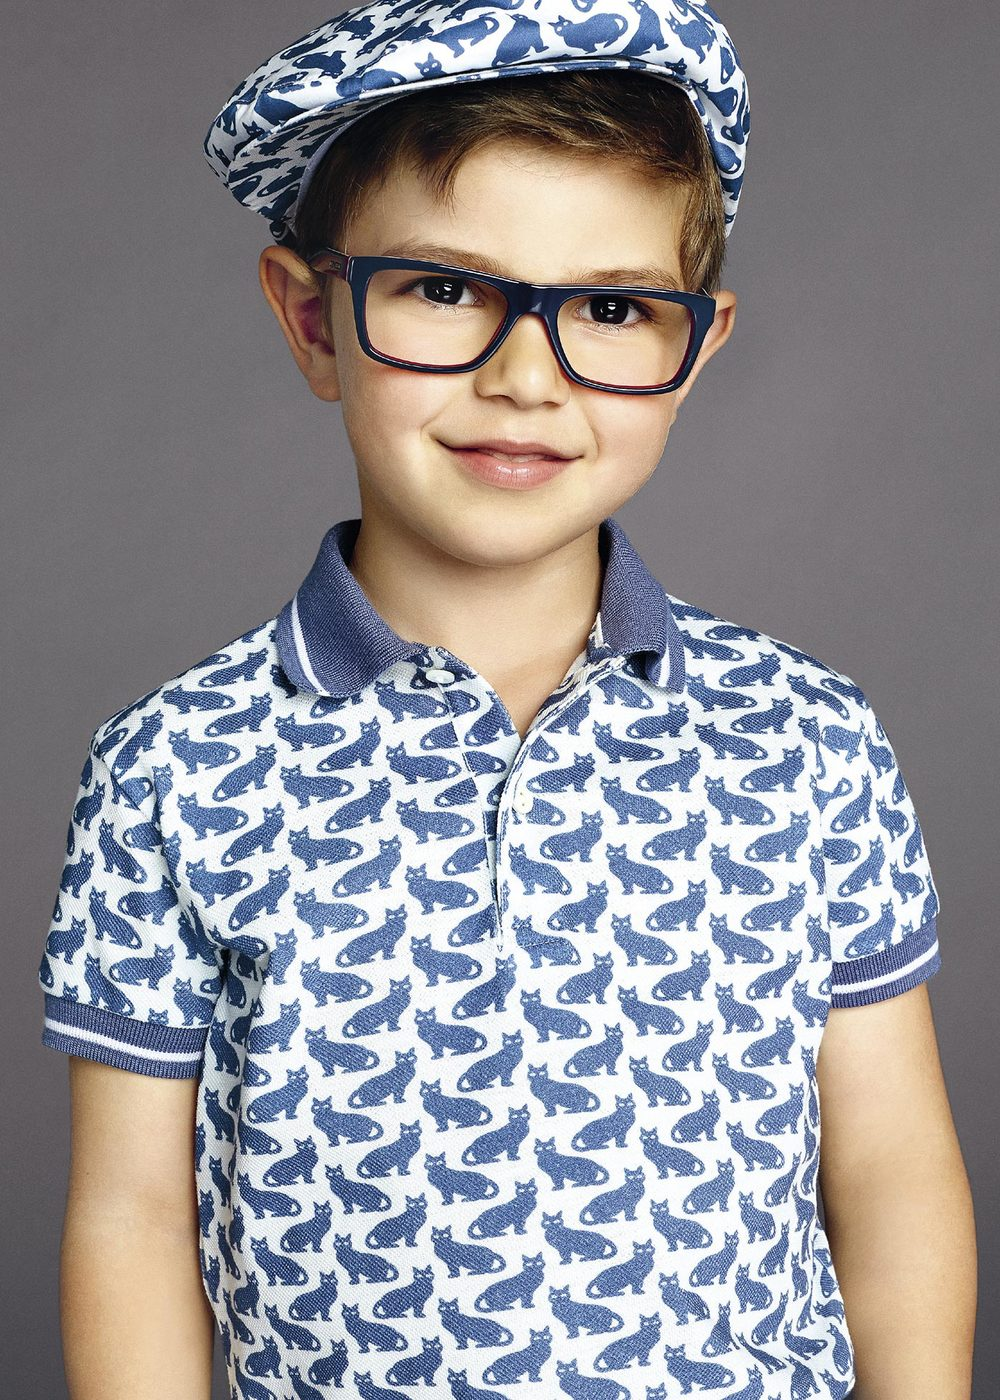 dolce-and-gabbana-summer-2015-child-collection-86-zoom.jpg